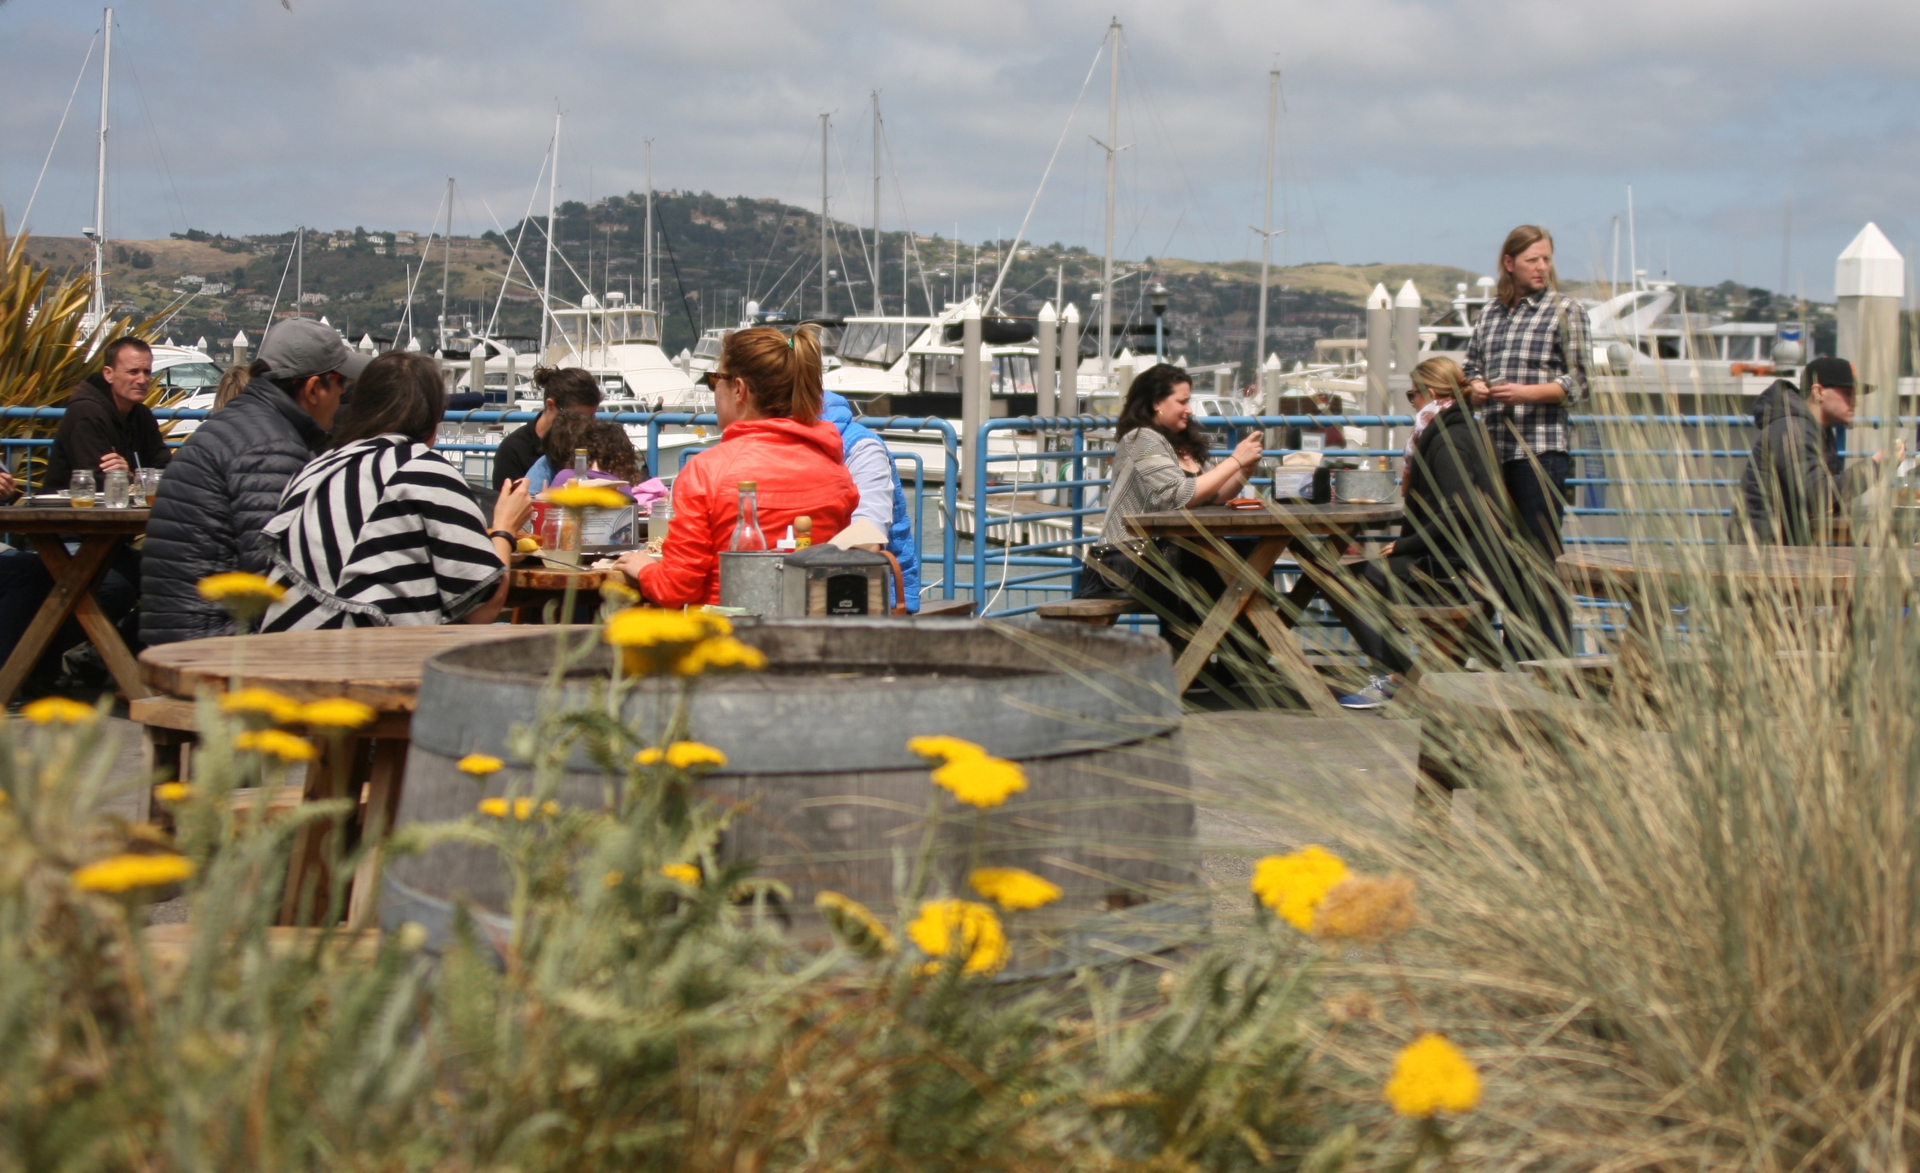 Ultra-casual outdoor dining on the Sausalito harbor at Fish.